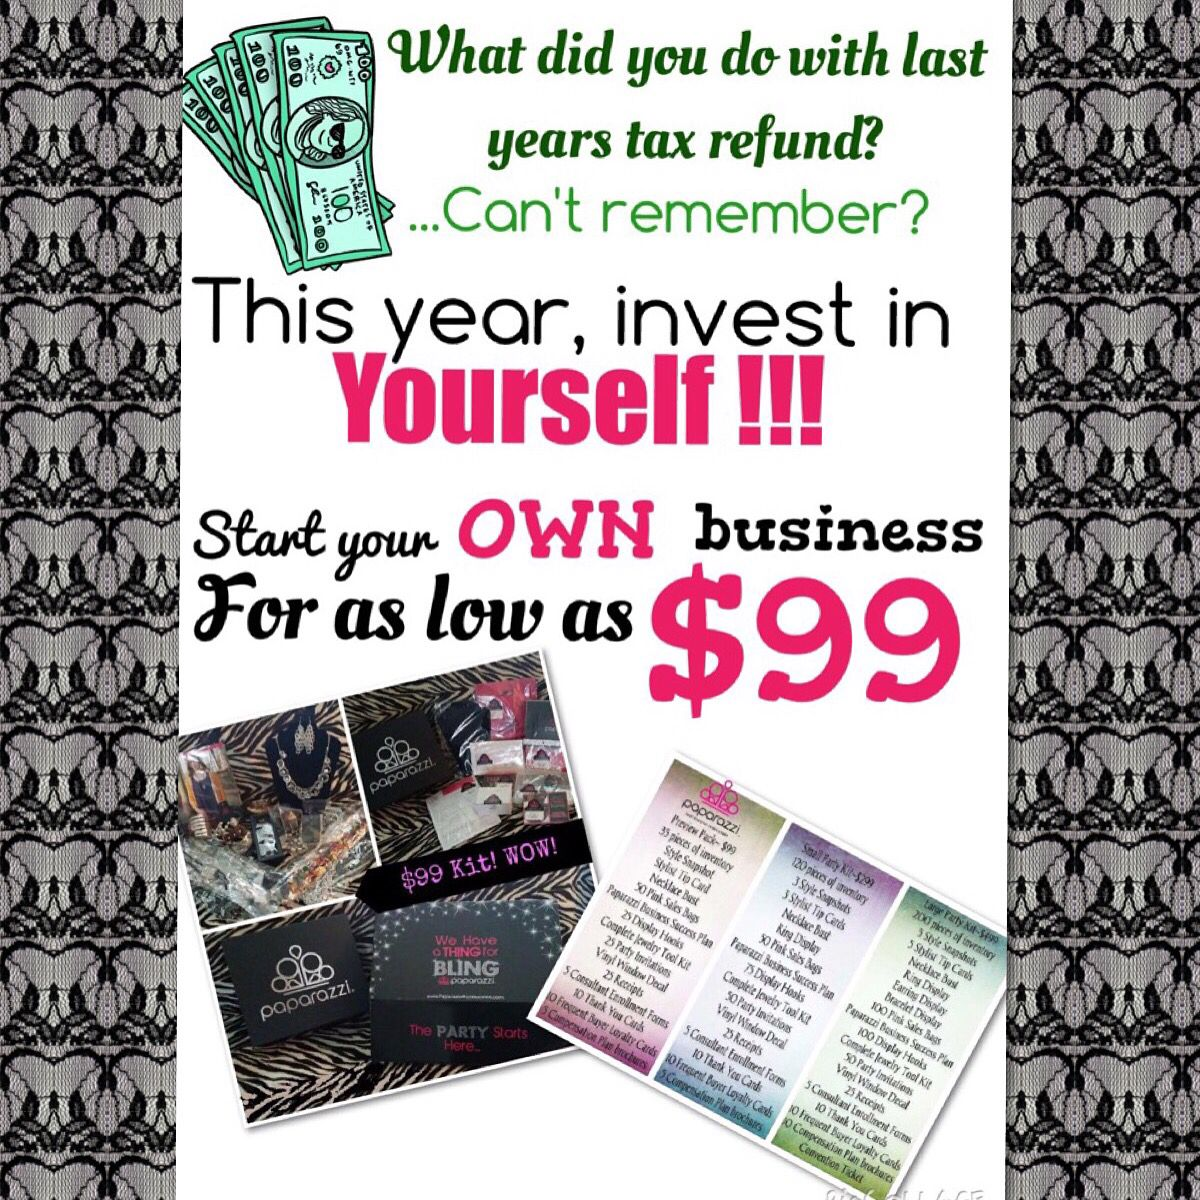 Join today at BLINGFOR5.COM! Invest in yourself!